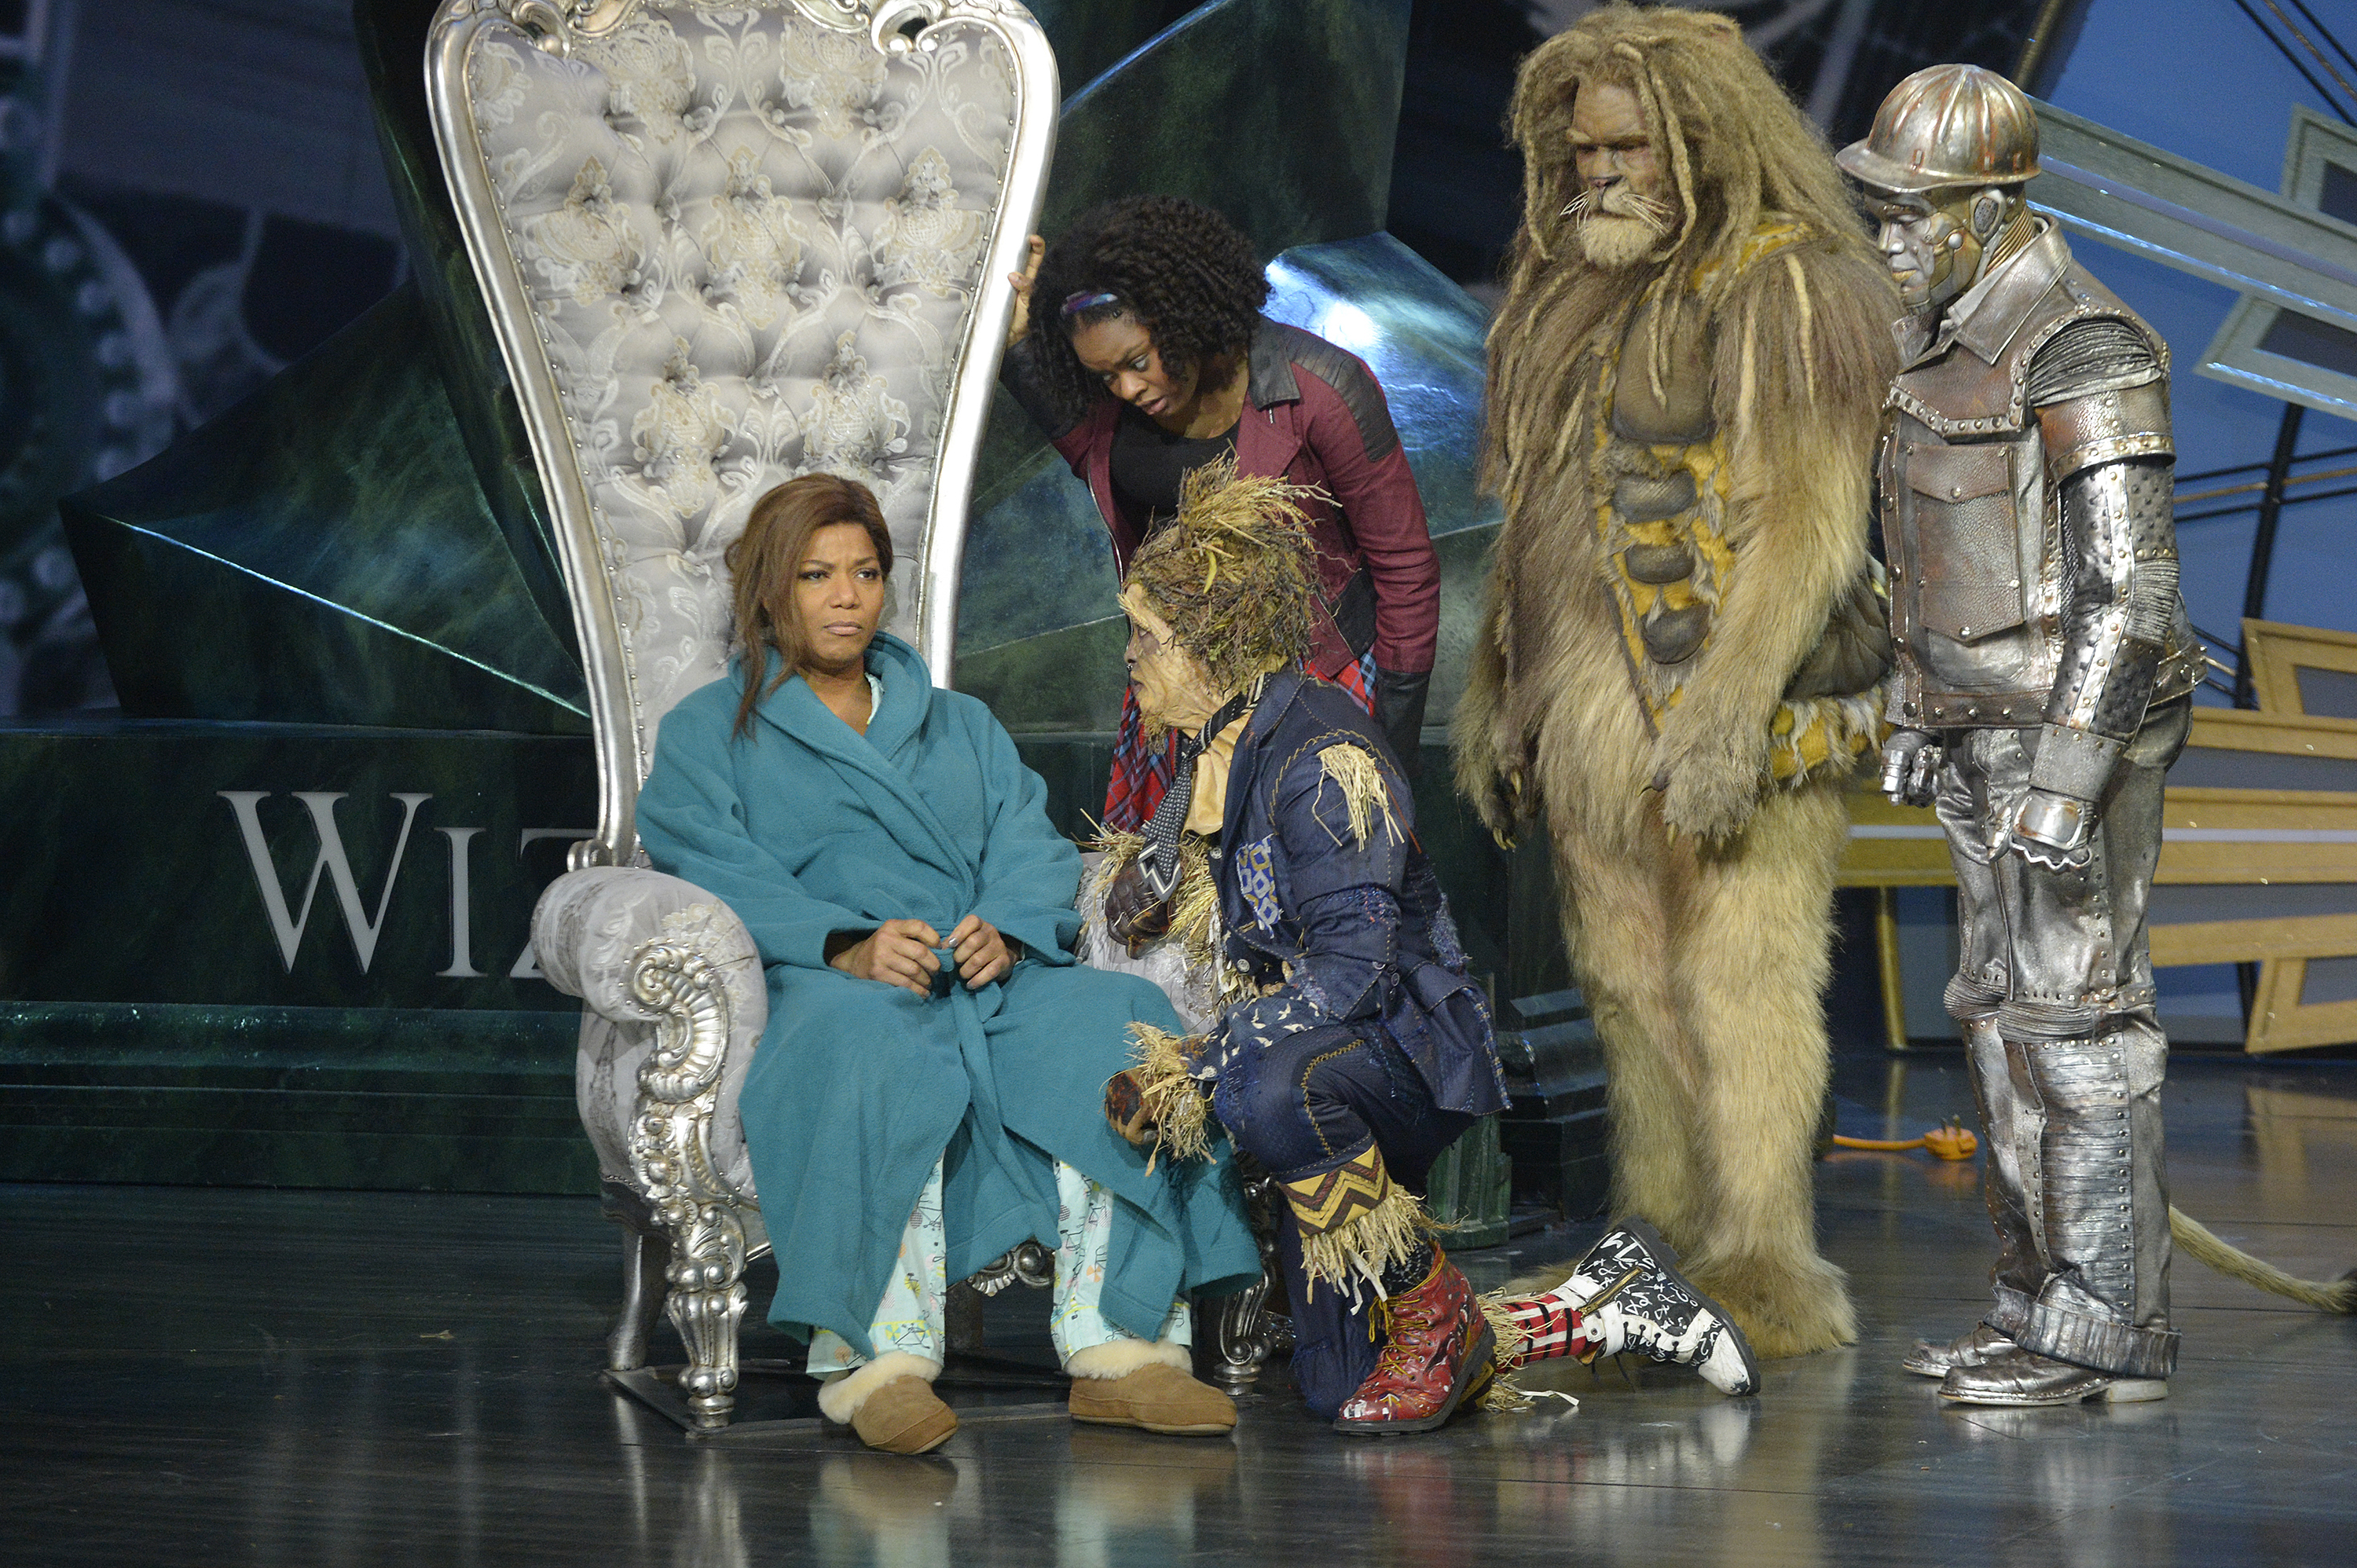 the wiz live musical